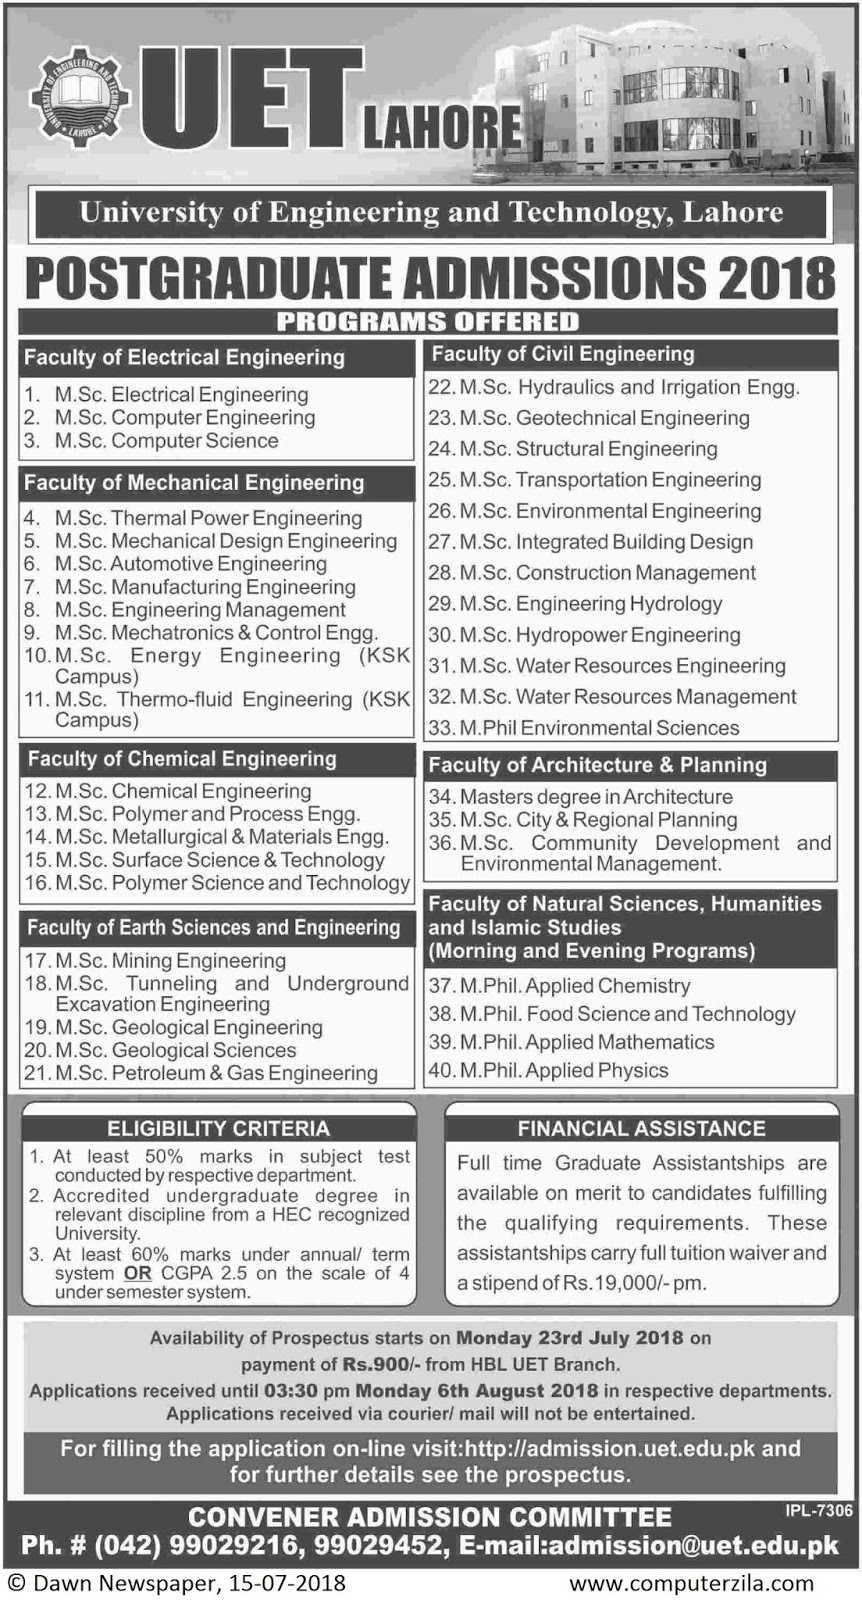 Admissions Open For Fall 2018 At UET Lahore, Sheikhupura, Narowal, Gujranwala and Faisalabad Campus